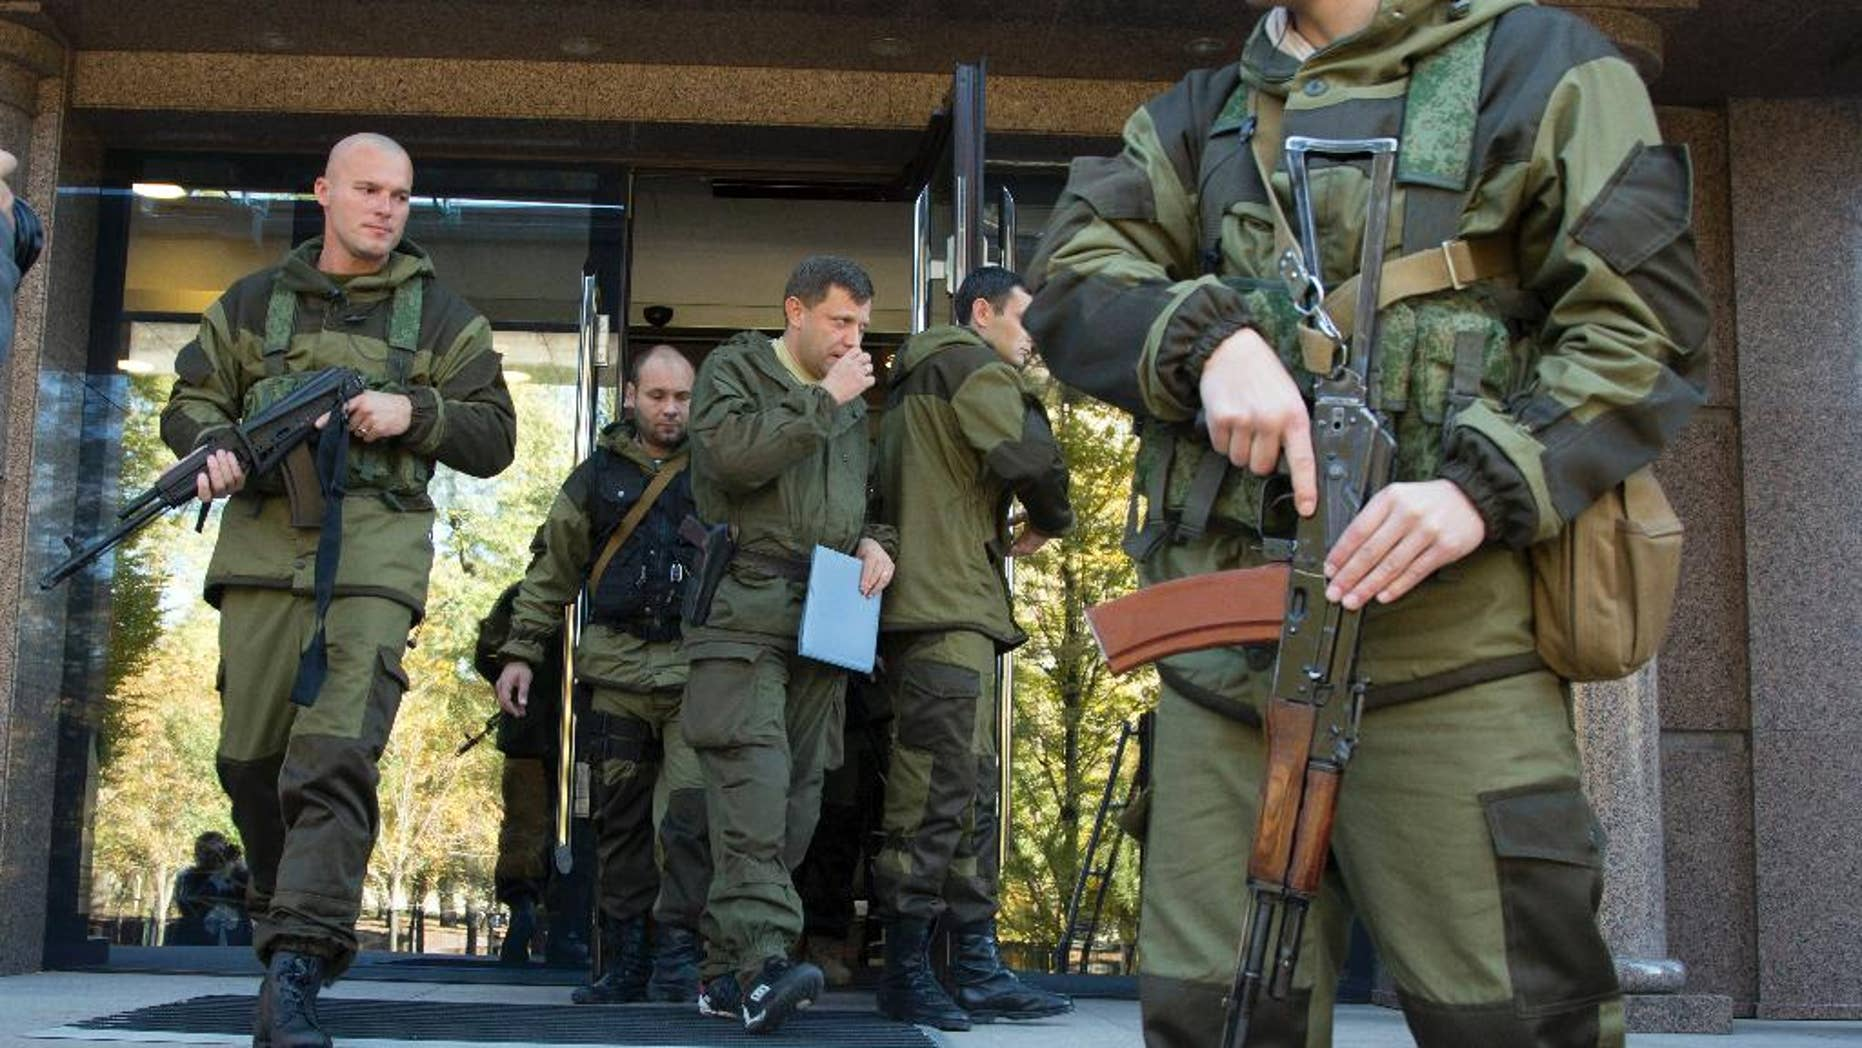 Alexander Zakharchenko, Prime Minister of the self proclaimed 'Donetsk People's Republic', centre,  surrounded by pro-Russian rebels, walks in the town of Donetsk, eastern Ukraine Saturday, Oct. 11, 2014. A pro-Russian rebel leader says they have signed a demarcation deal with the Ukrainian government which sees the Ukrainians give up several villages including the one next to a strategic airport. (AP Photo/Dmitry Lovetsky)